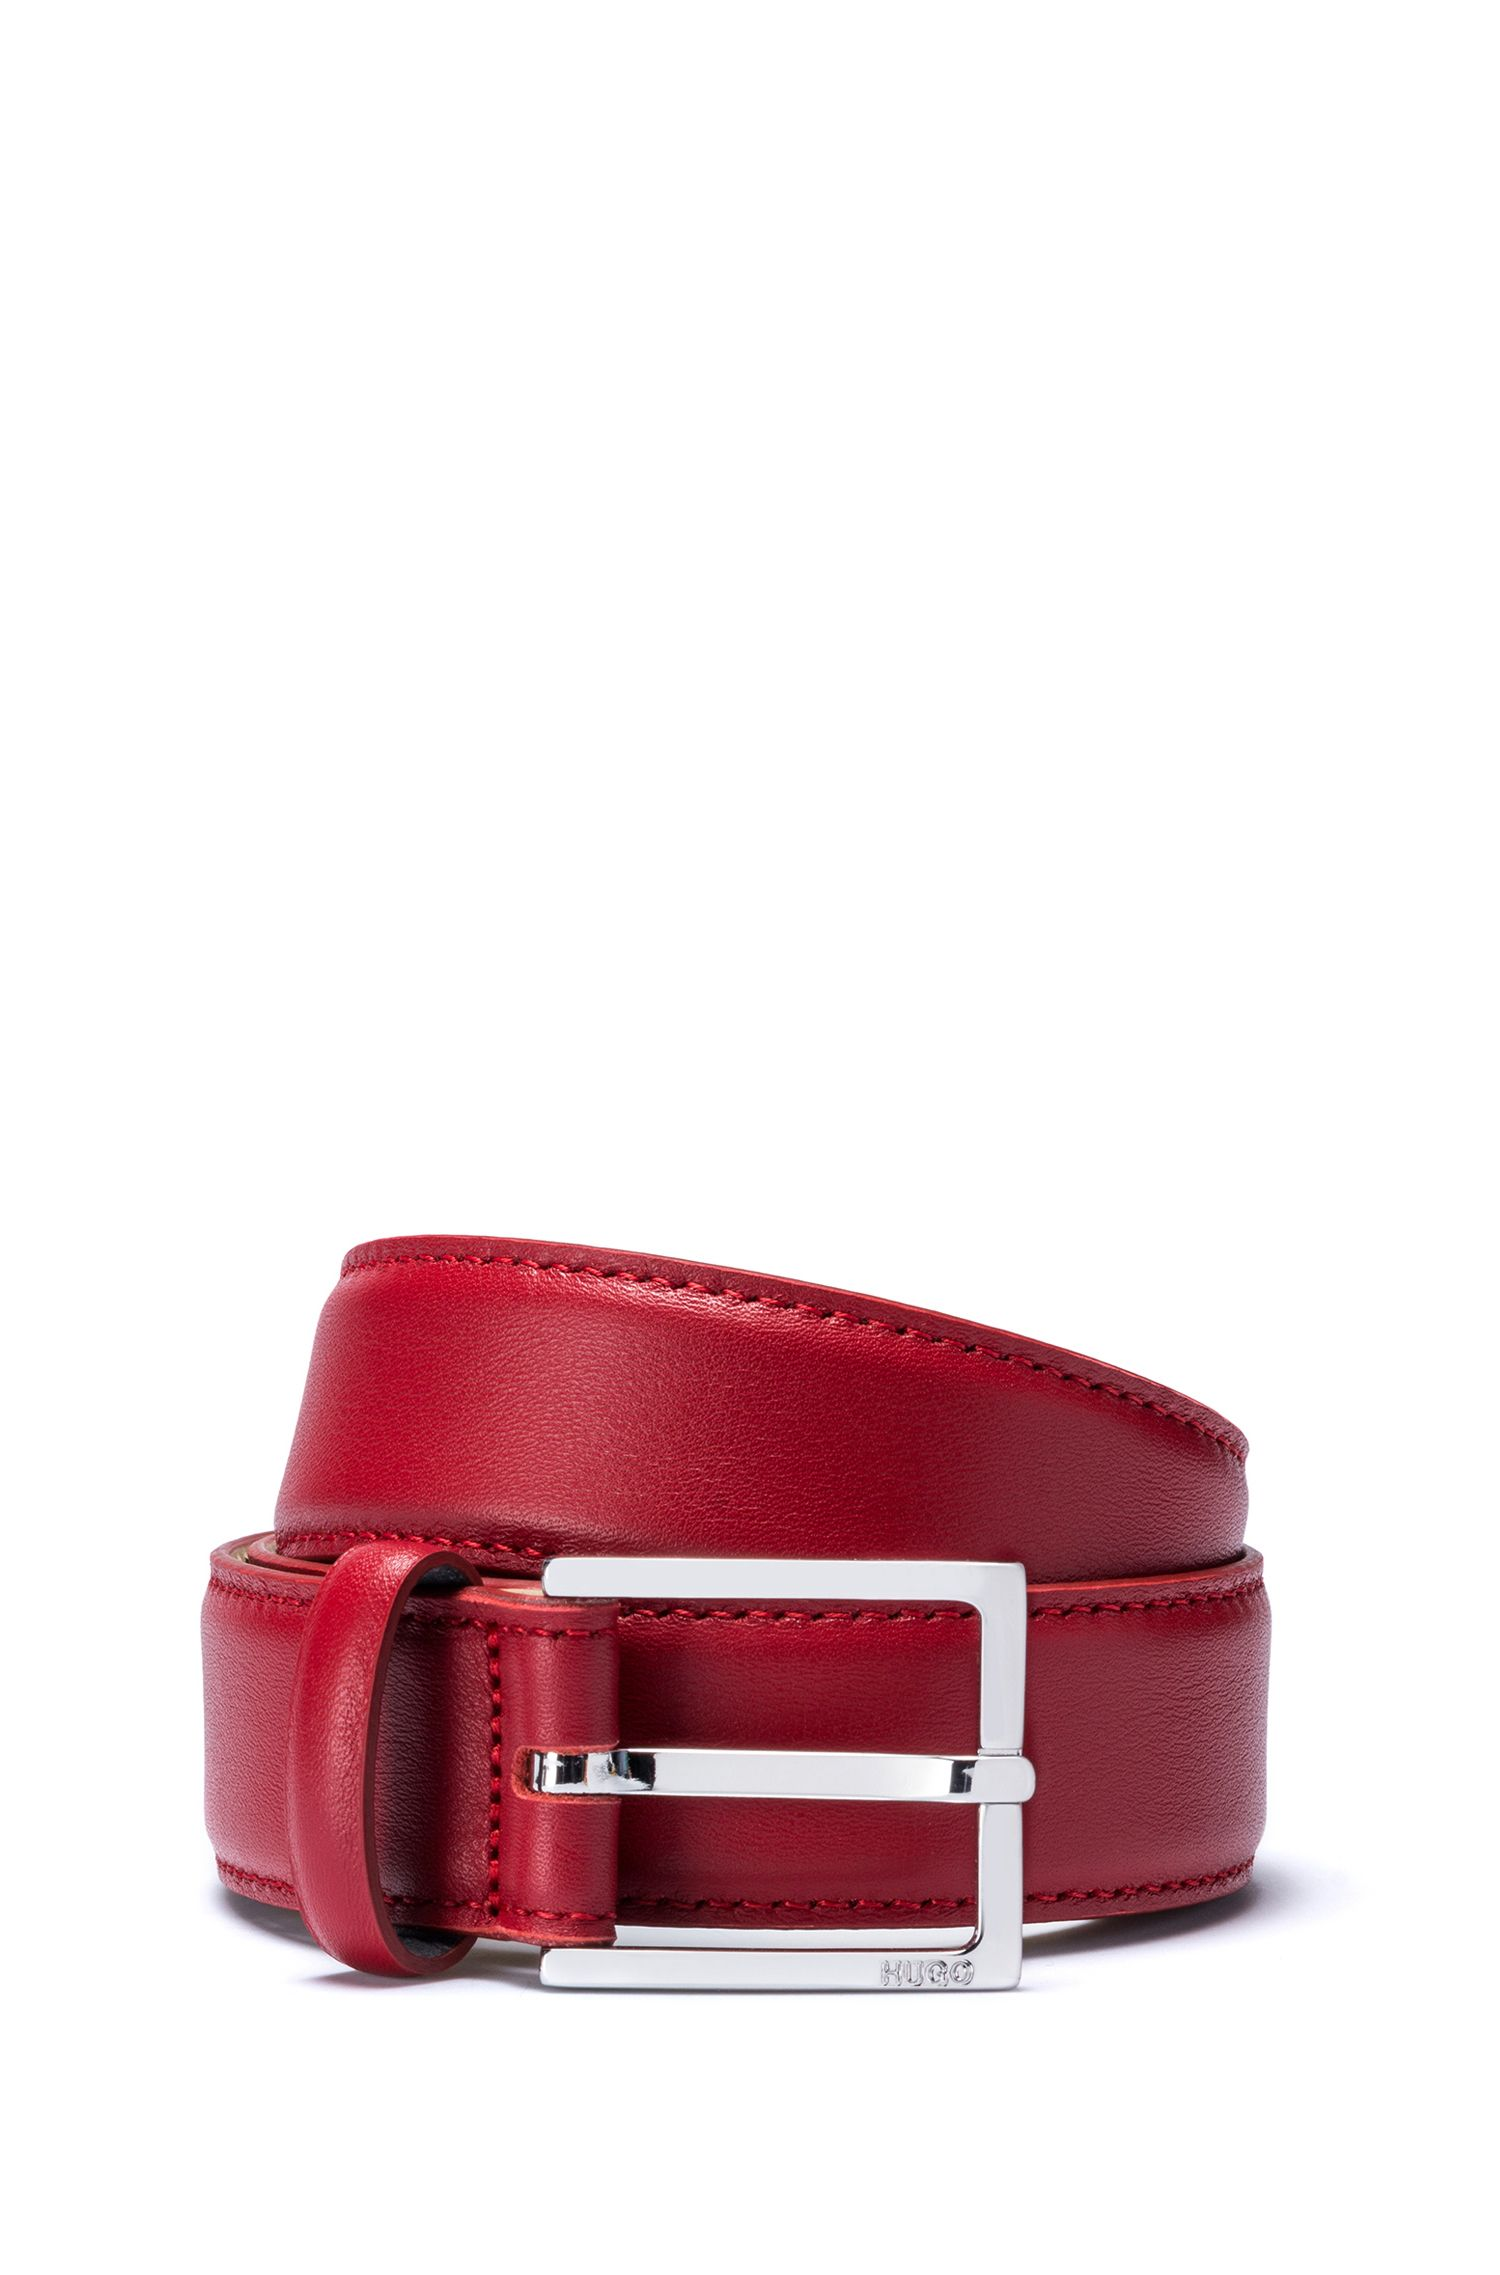 Italian leather belt with polished pin buckle